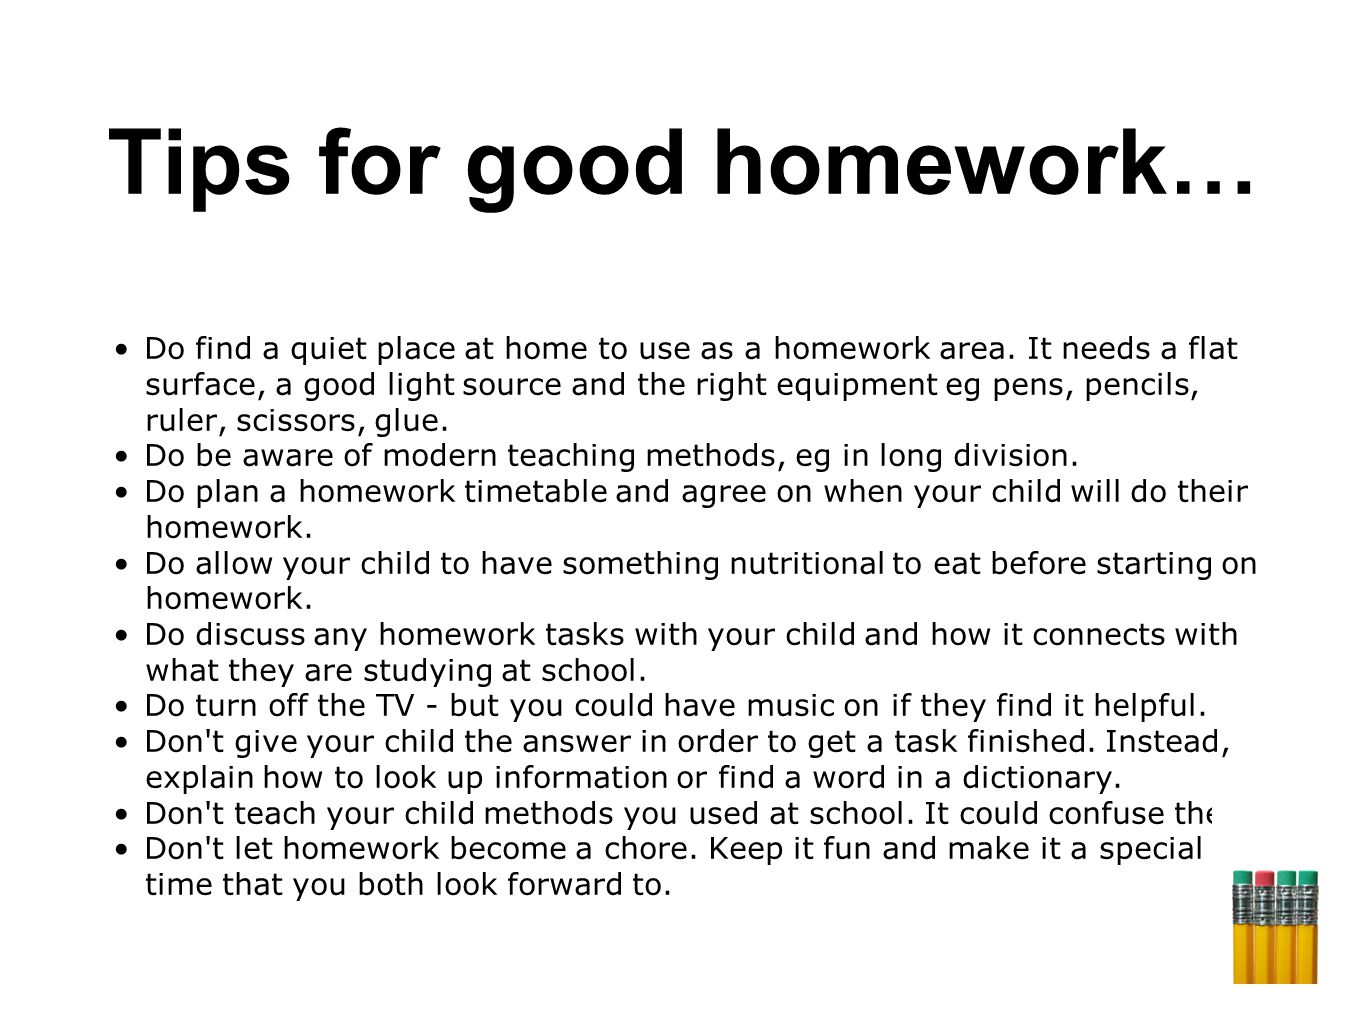 Tips for good homework… Do find a quiet place at home to use as a homework area.